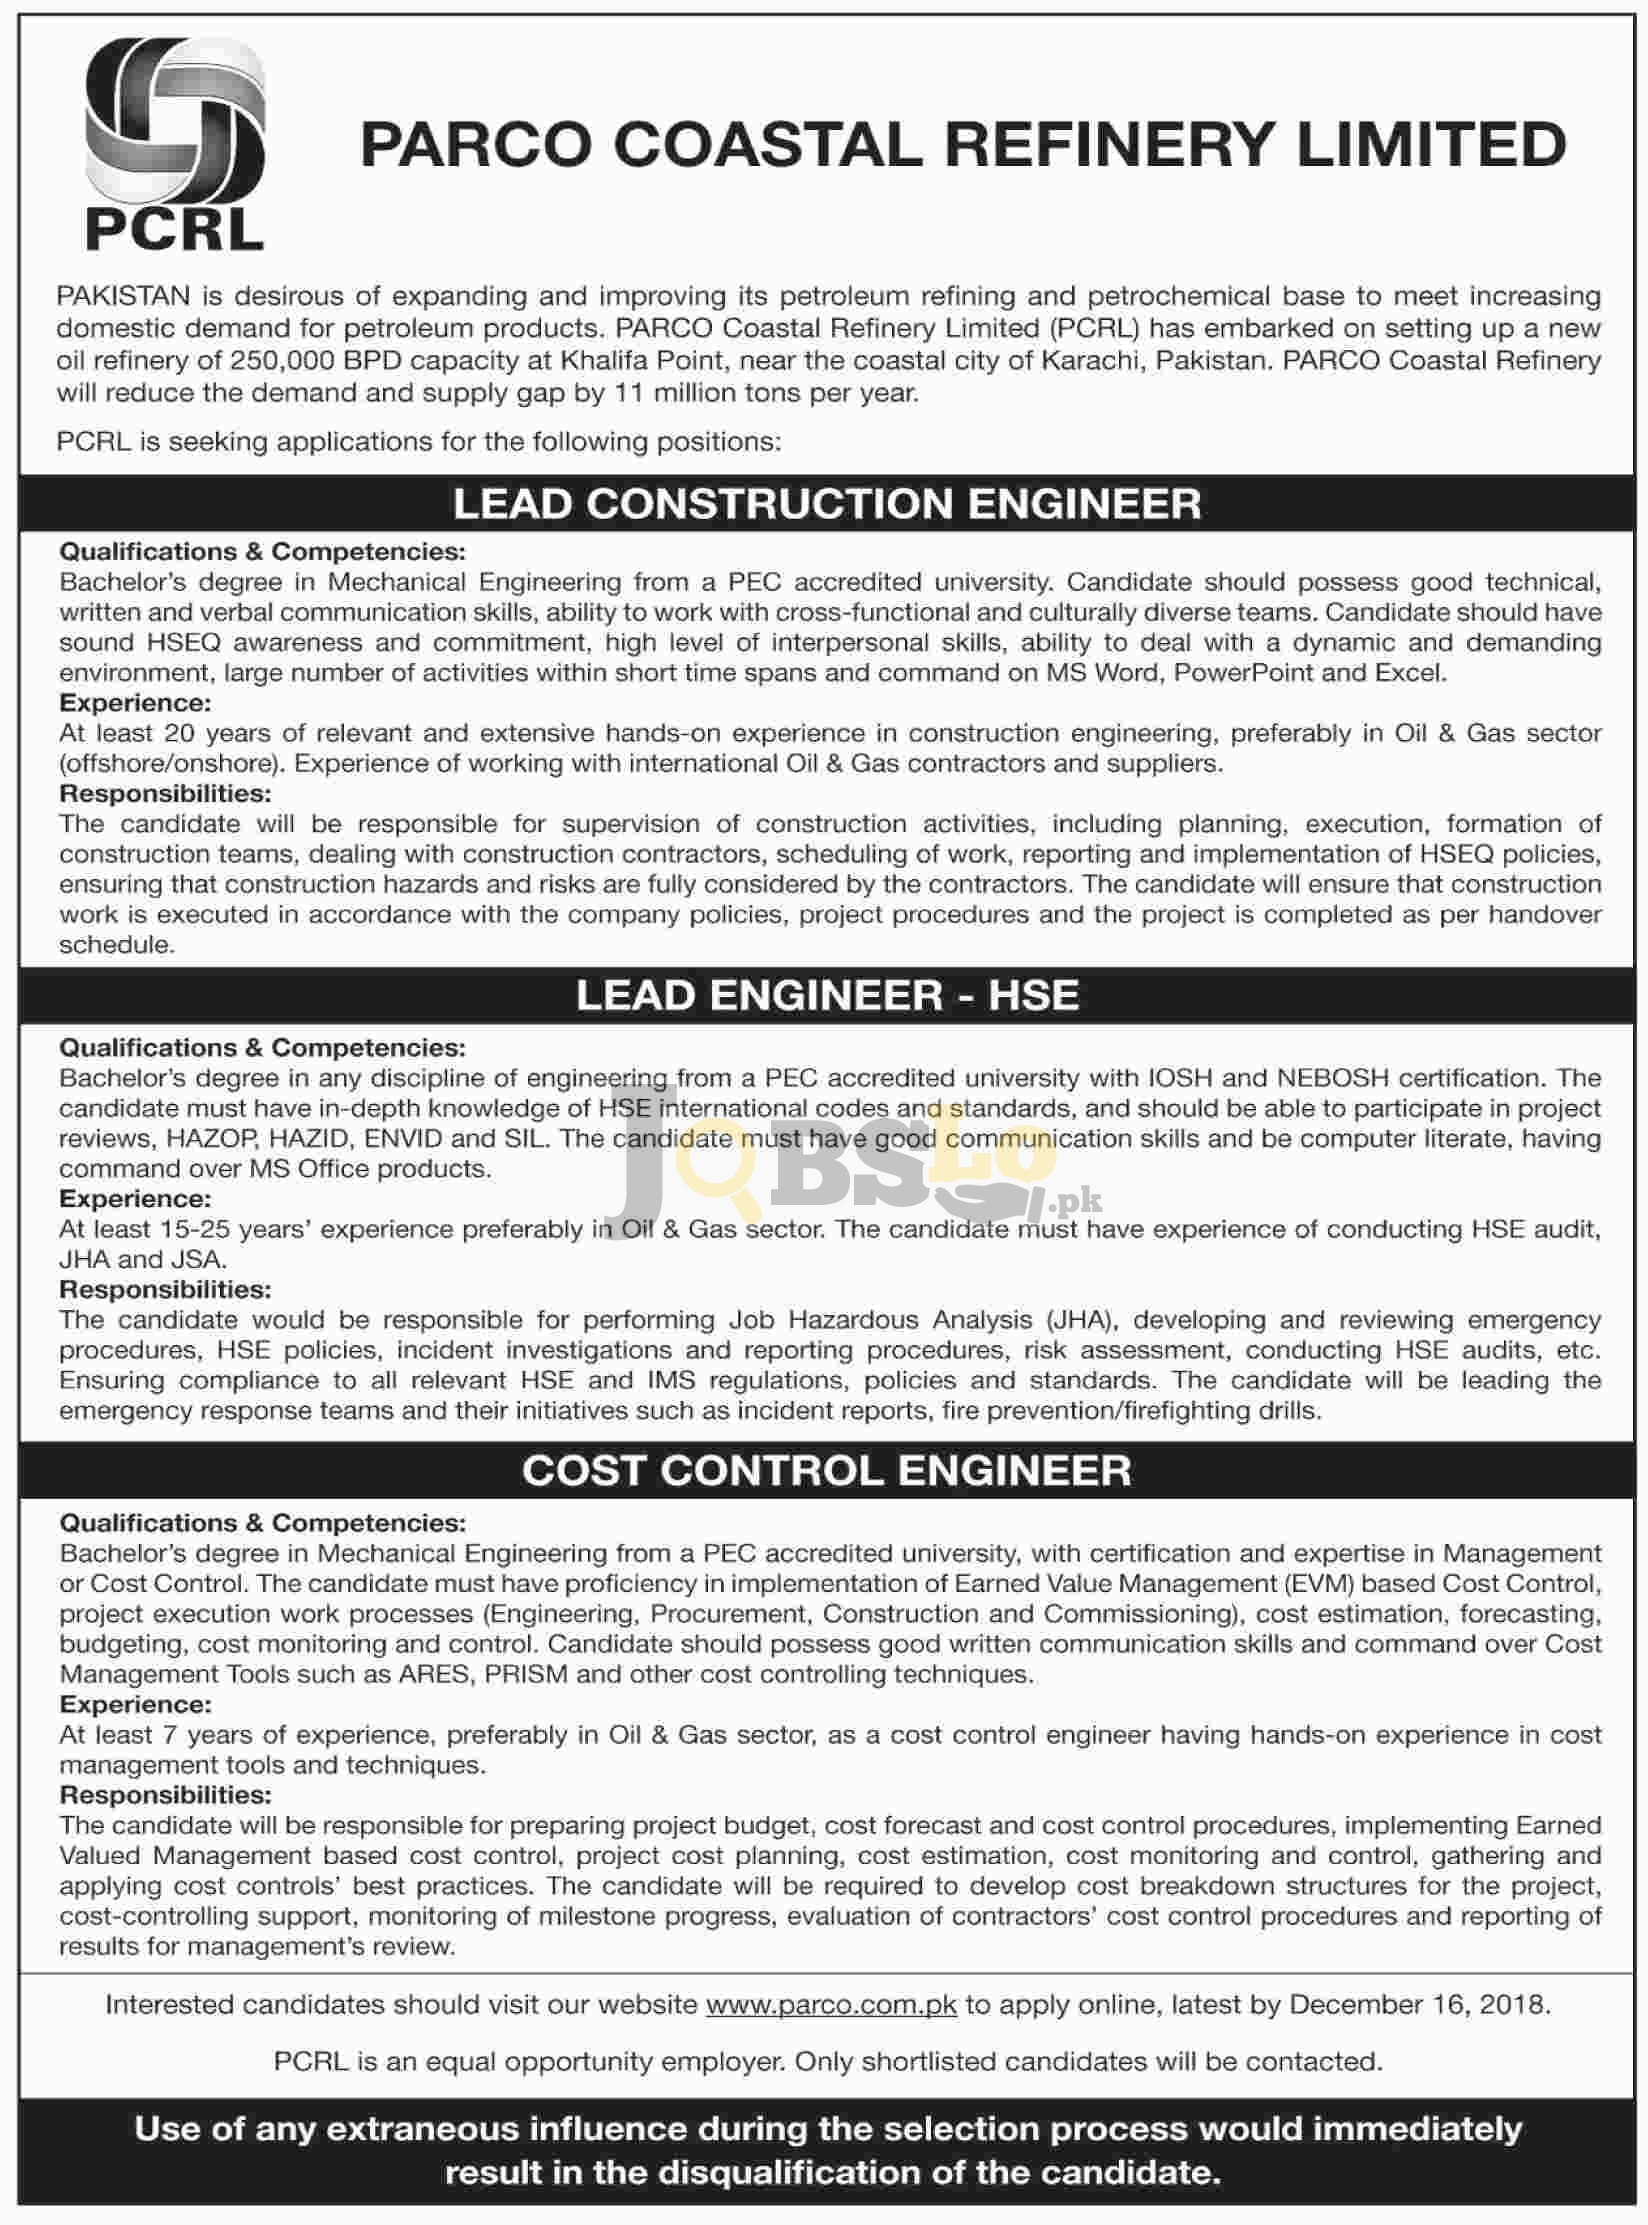 PARCO Coastal Refinery Limited Jobs 2018 Apply Online Current Openings